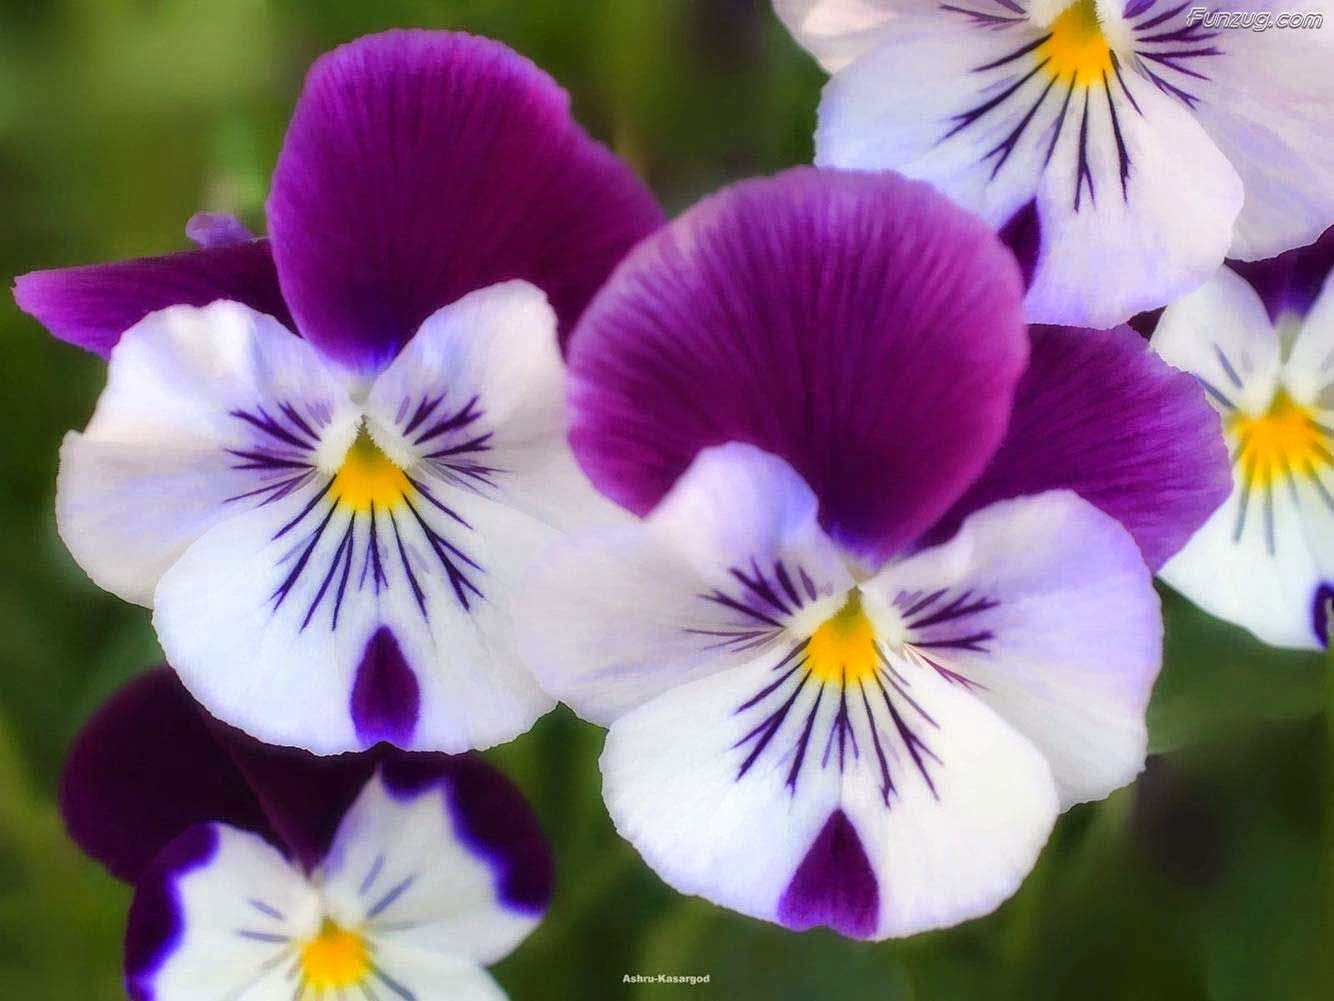 Most Beautiful Flowers in the World - Flower With Styles